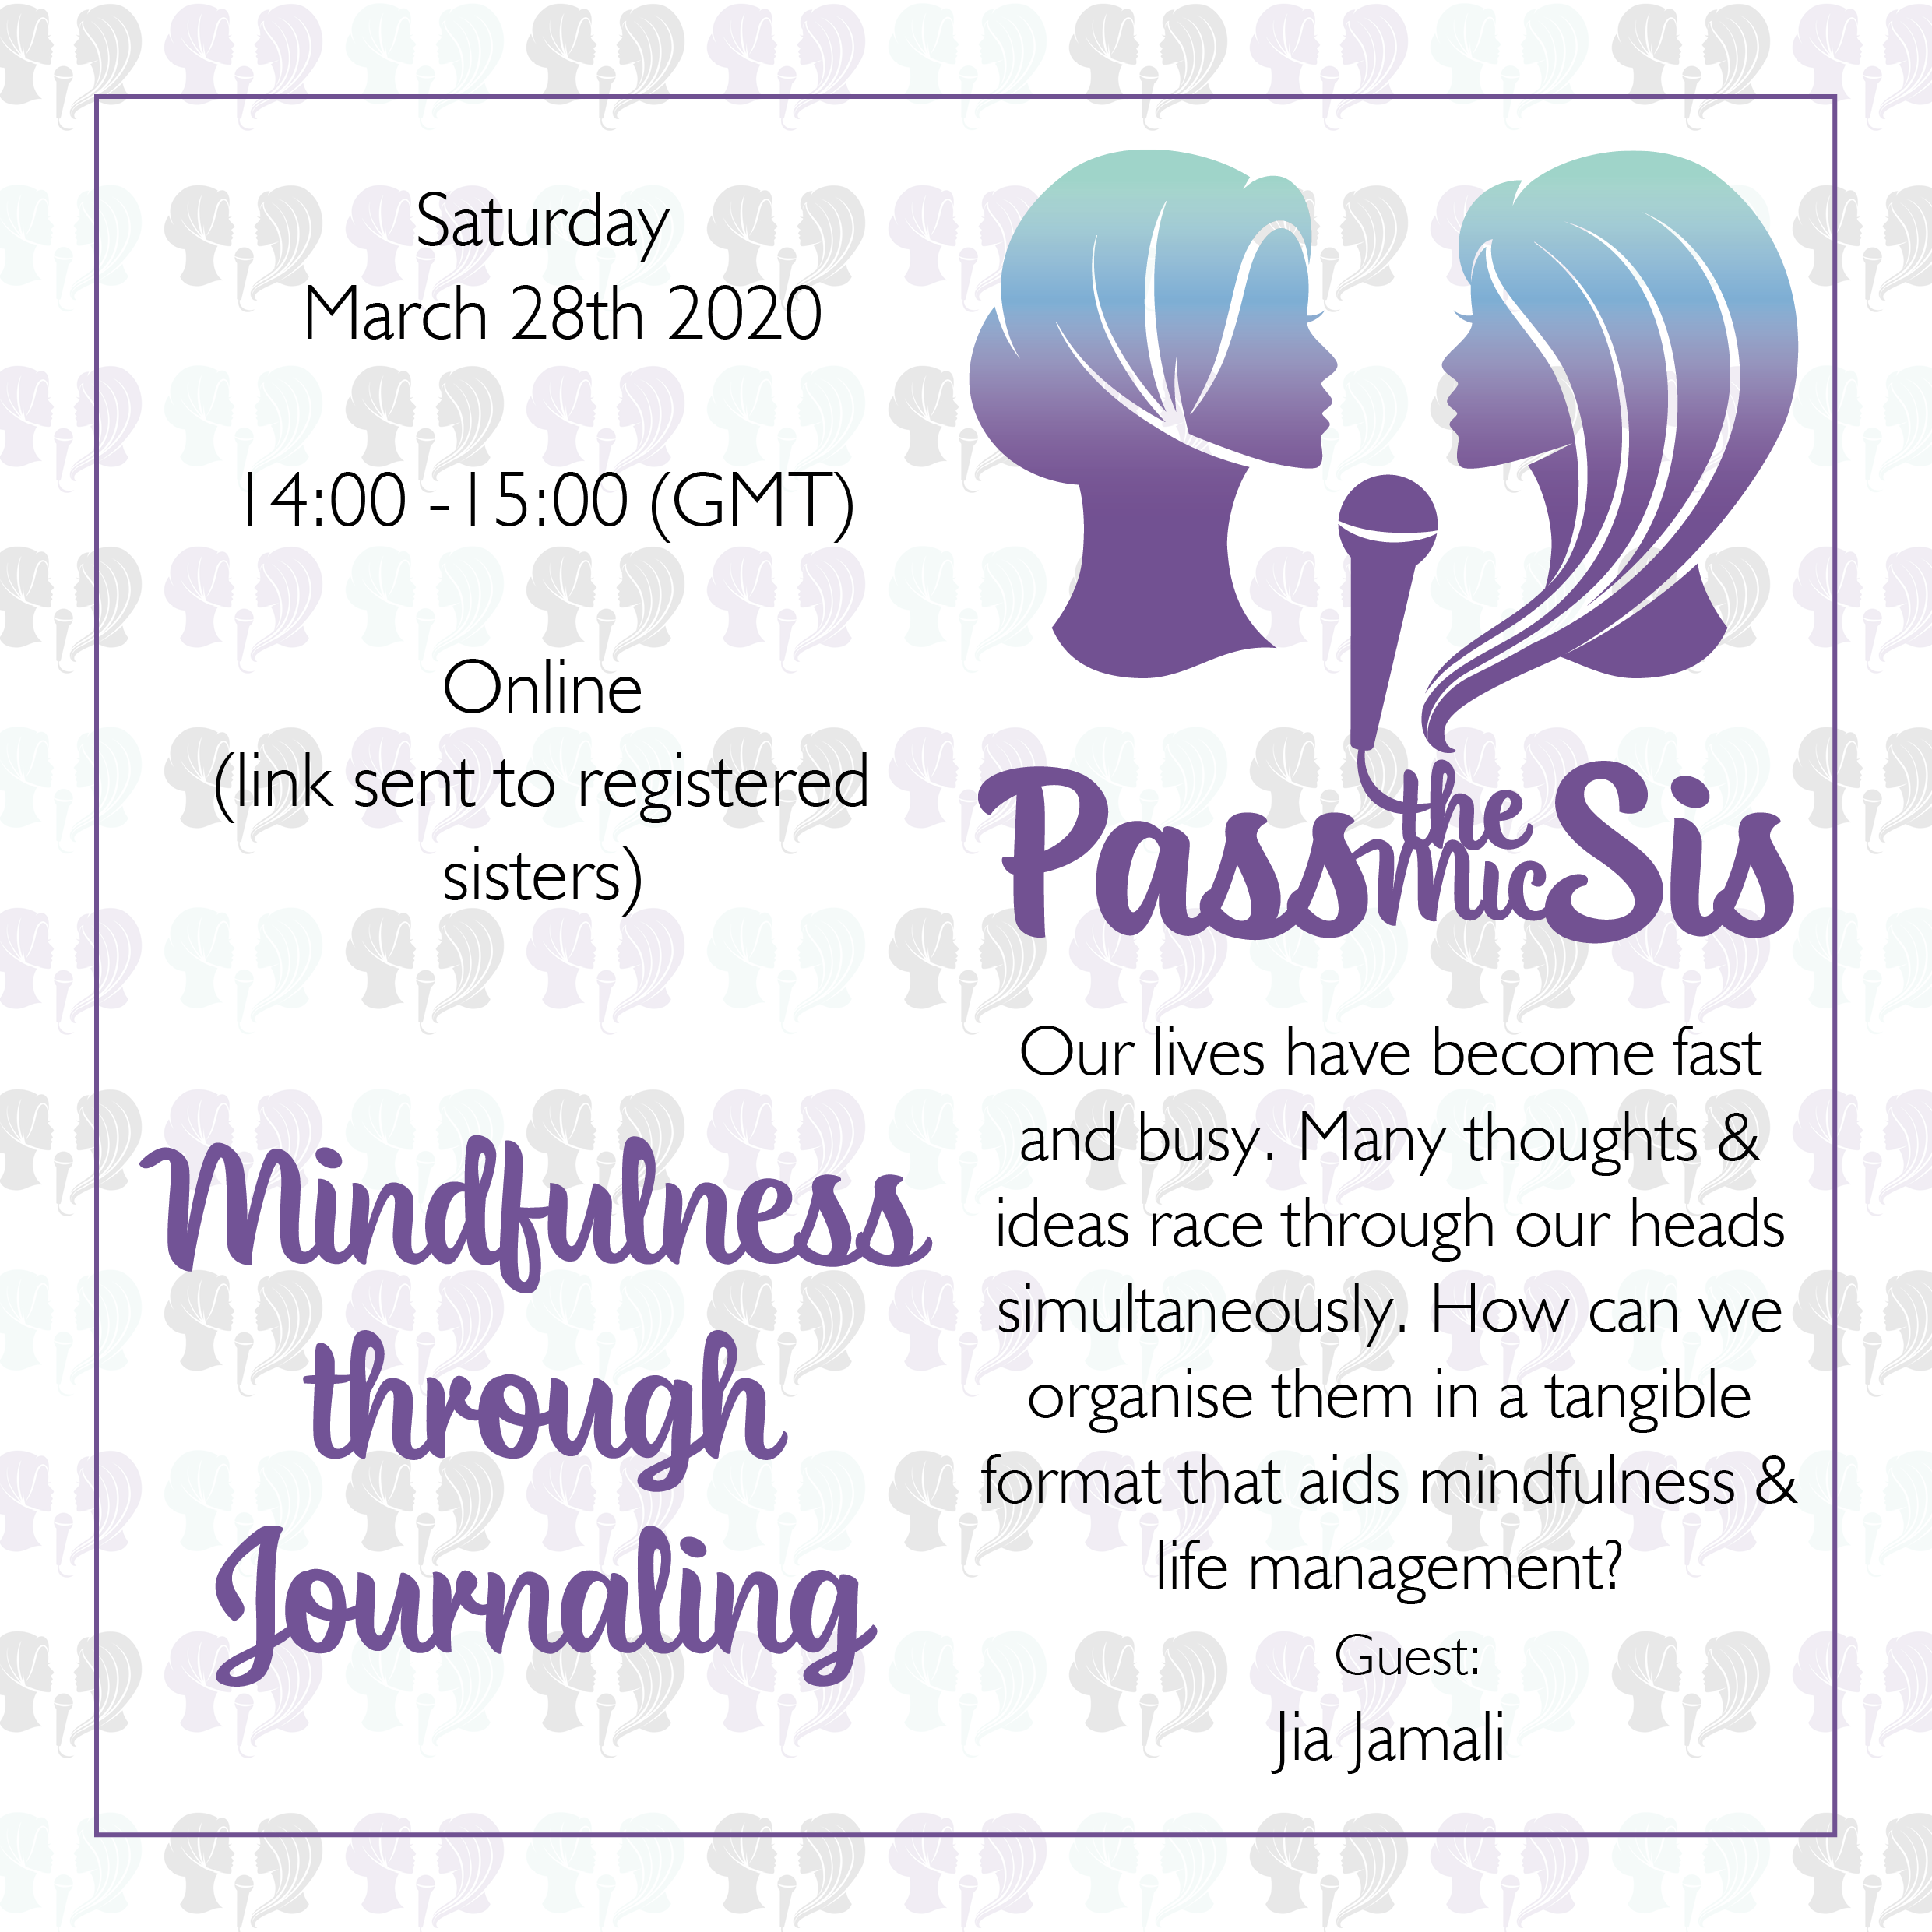 PtMSis Mindfulness through Journaling March 2020 Invitation